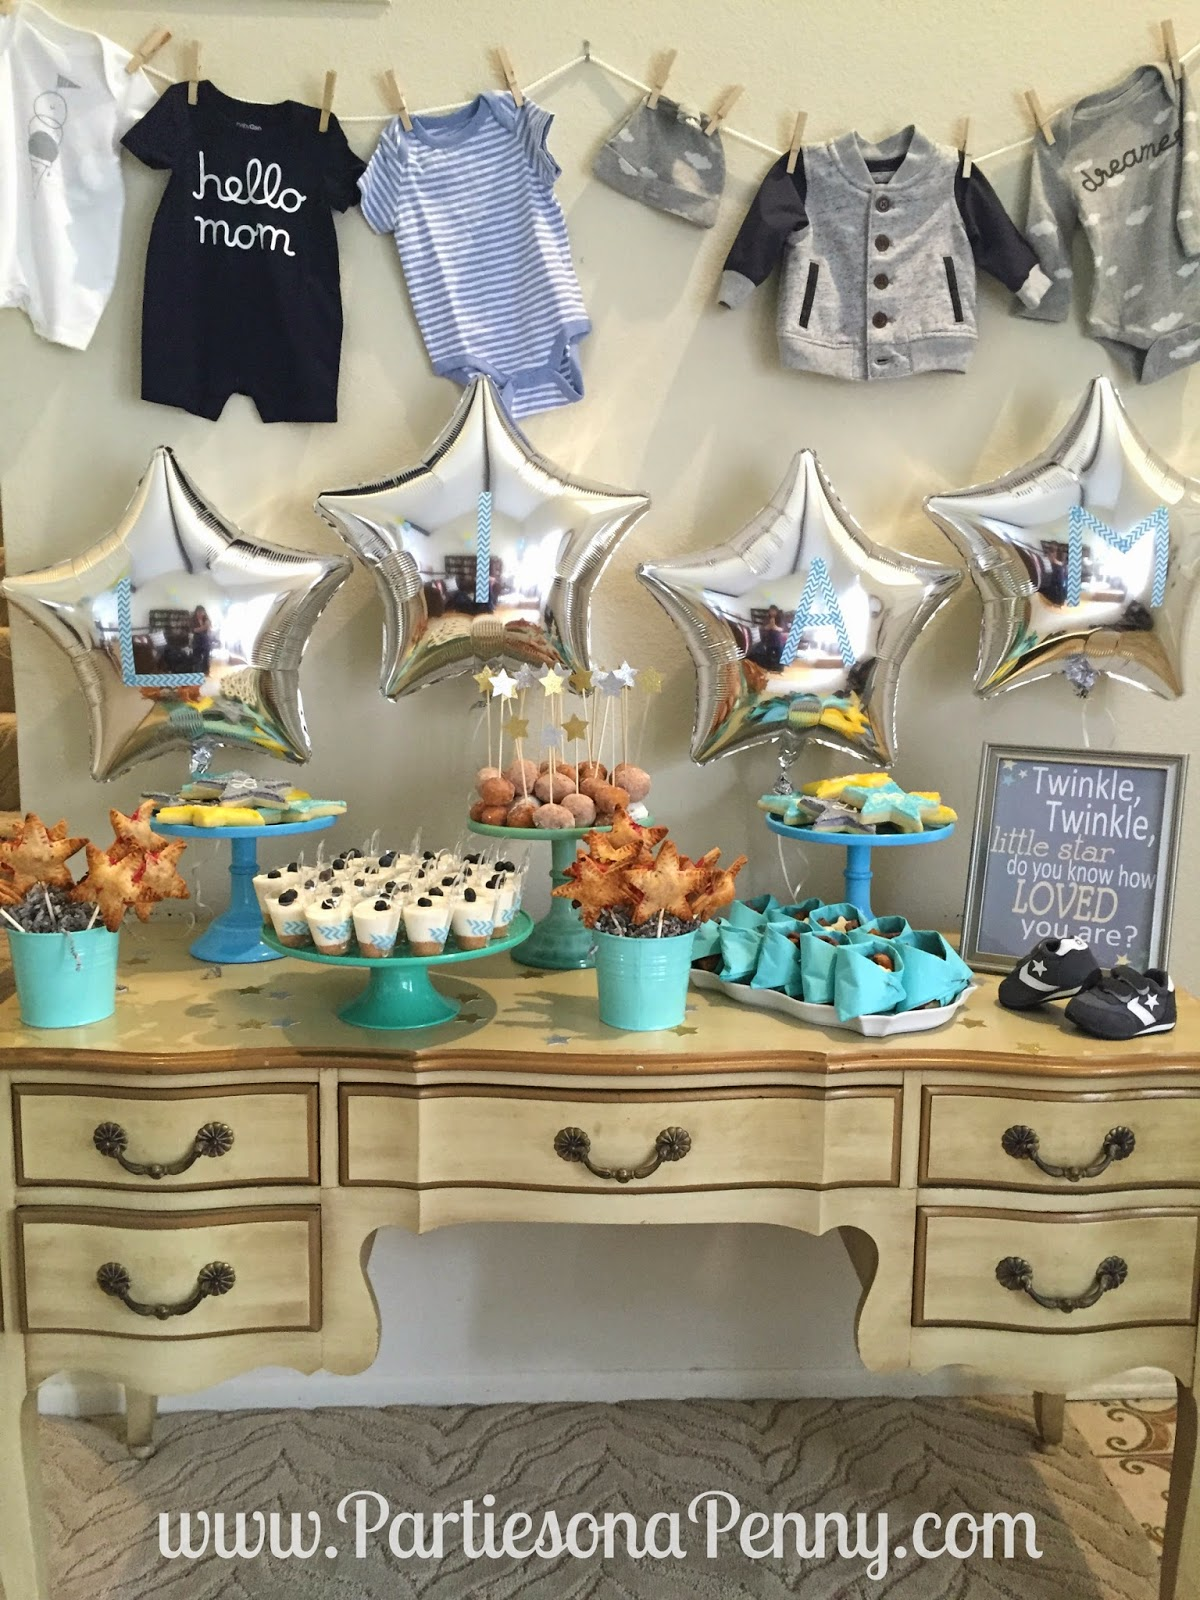 parties on a penny twinkle twinkle little star baby shower dessert table. Black Bedroom Furniture Sets. Home Design Ideas